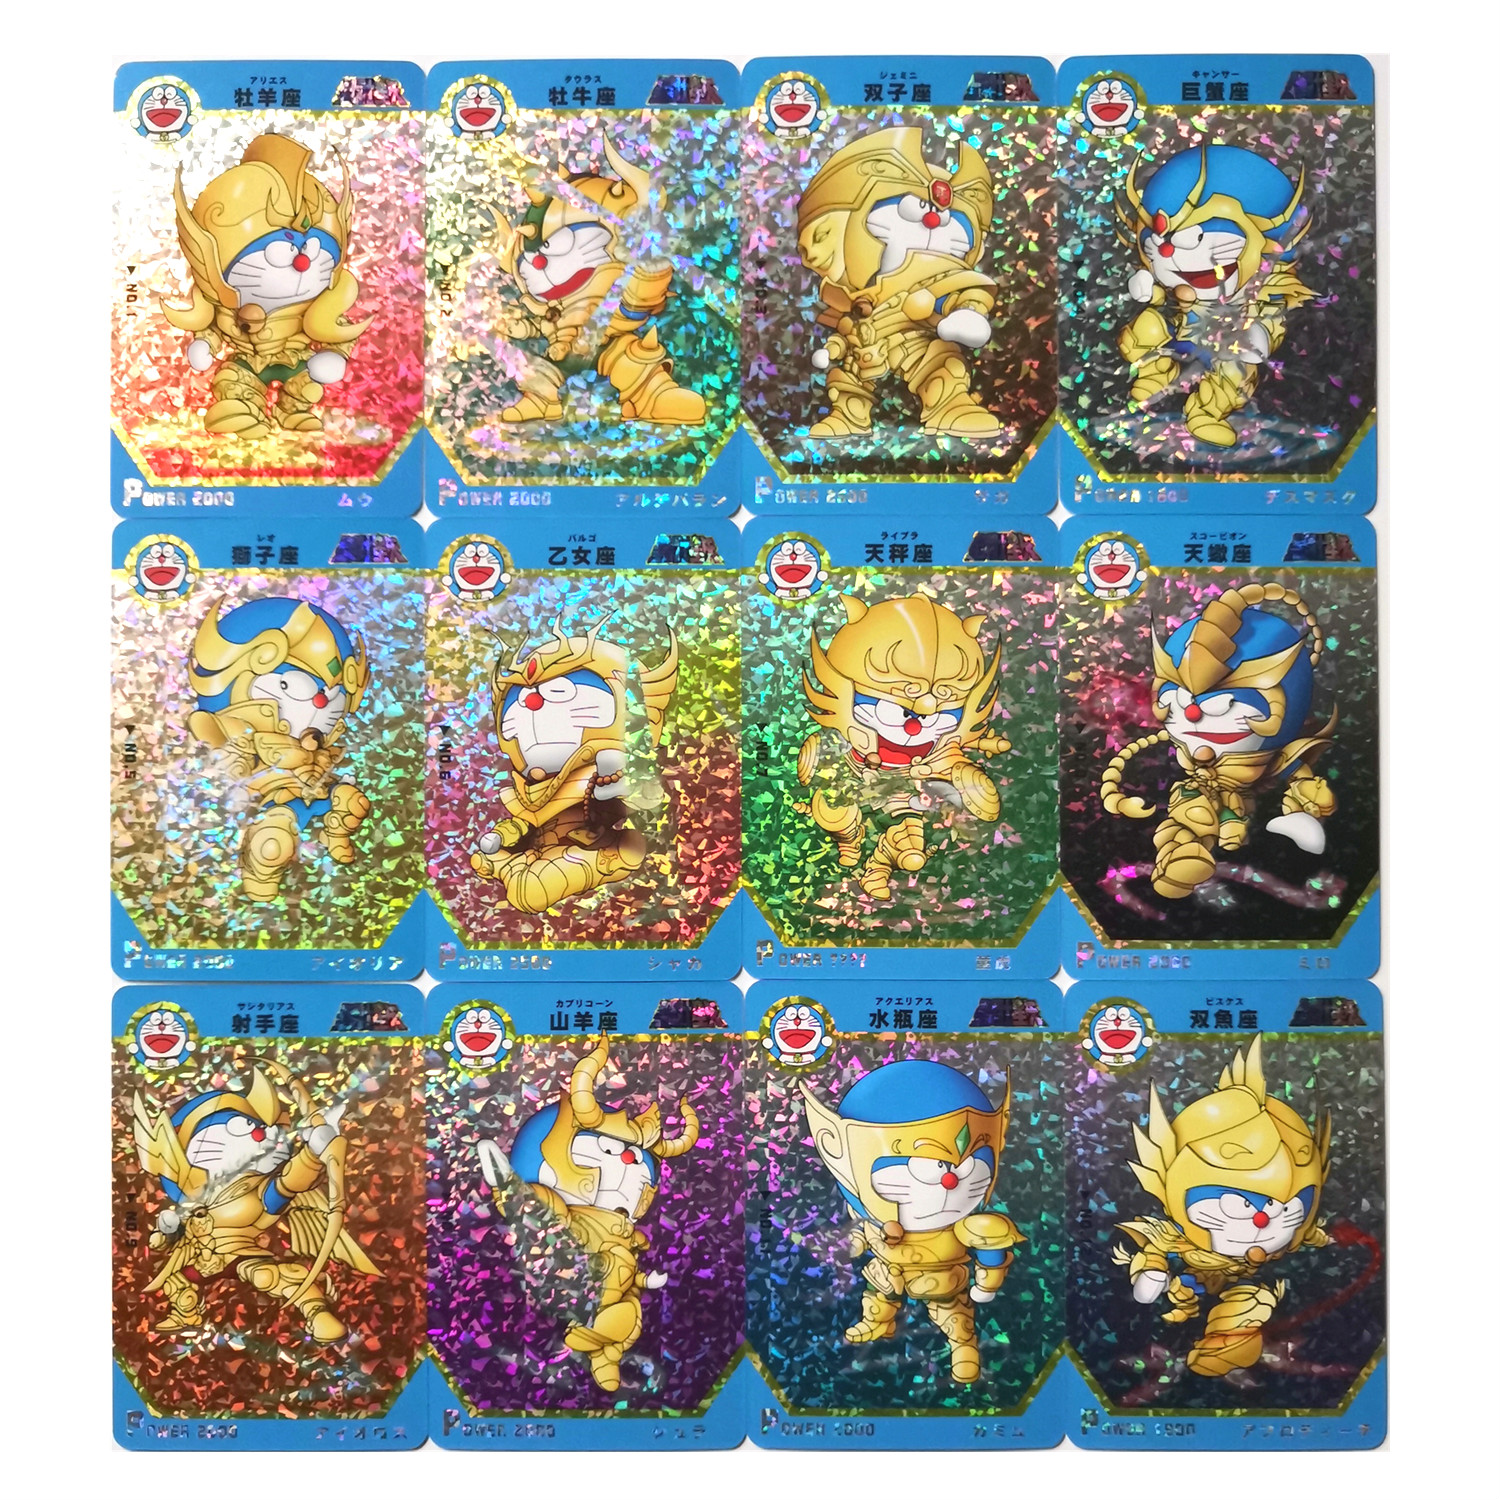 12pcs/set Doraemon Cosplay Saint Seiya Toys Hobbies Hobby Collectibles Game Collection Anime Cards